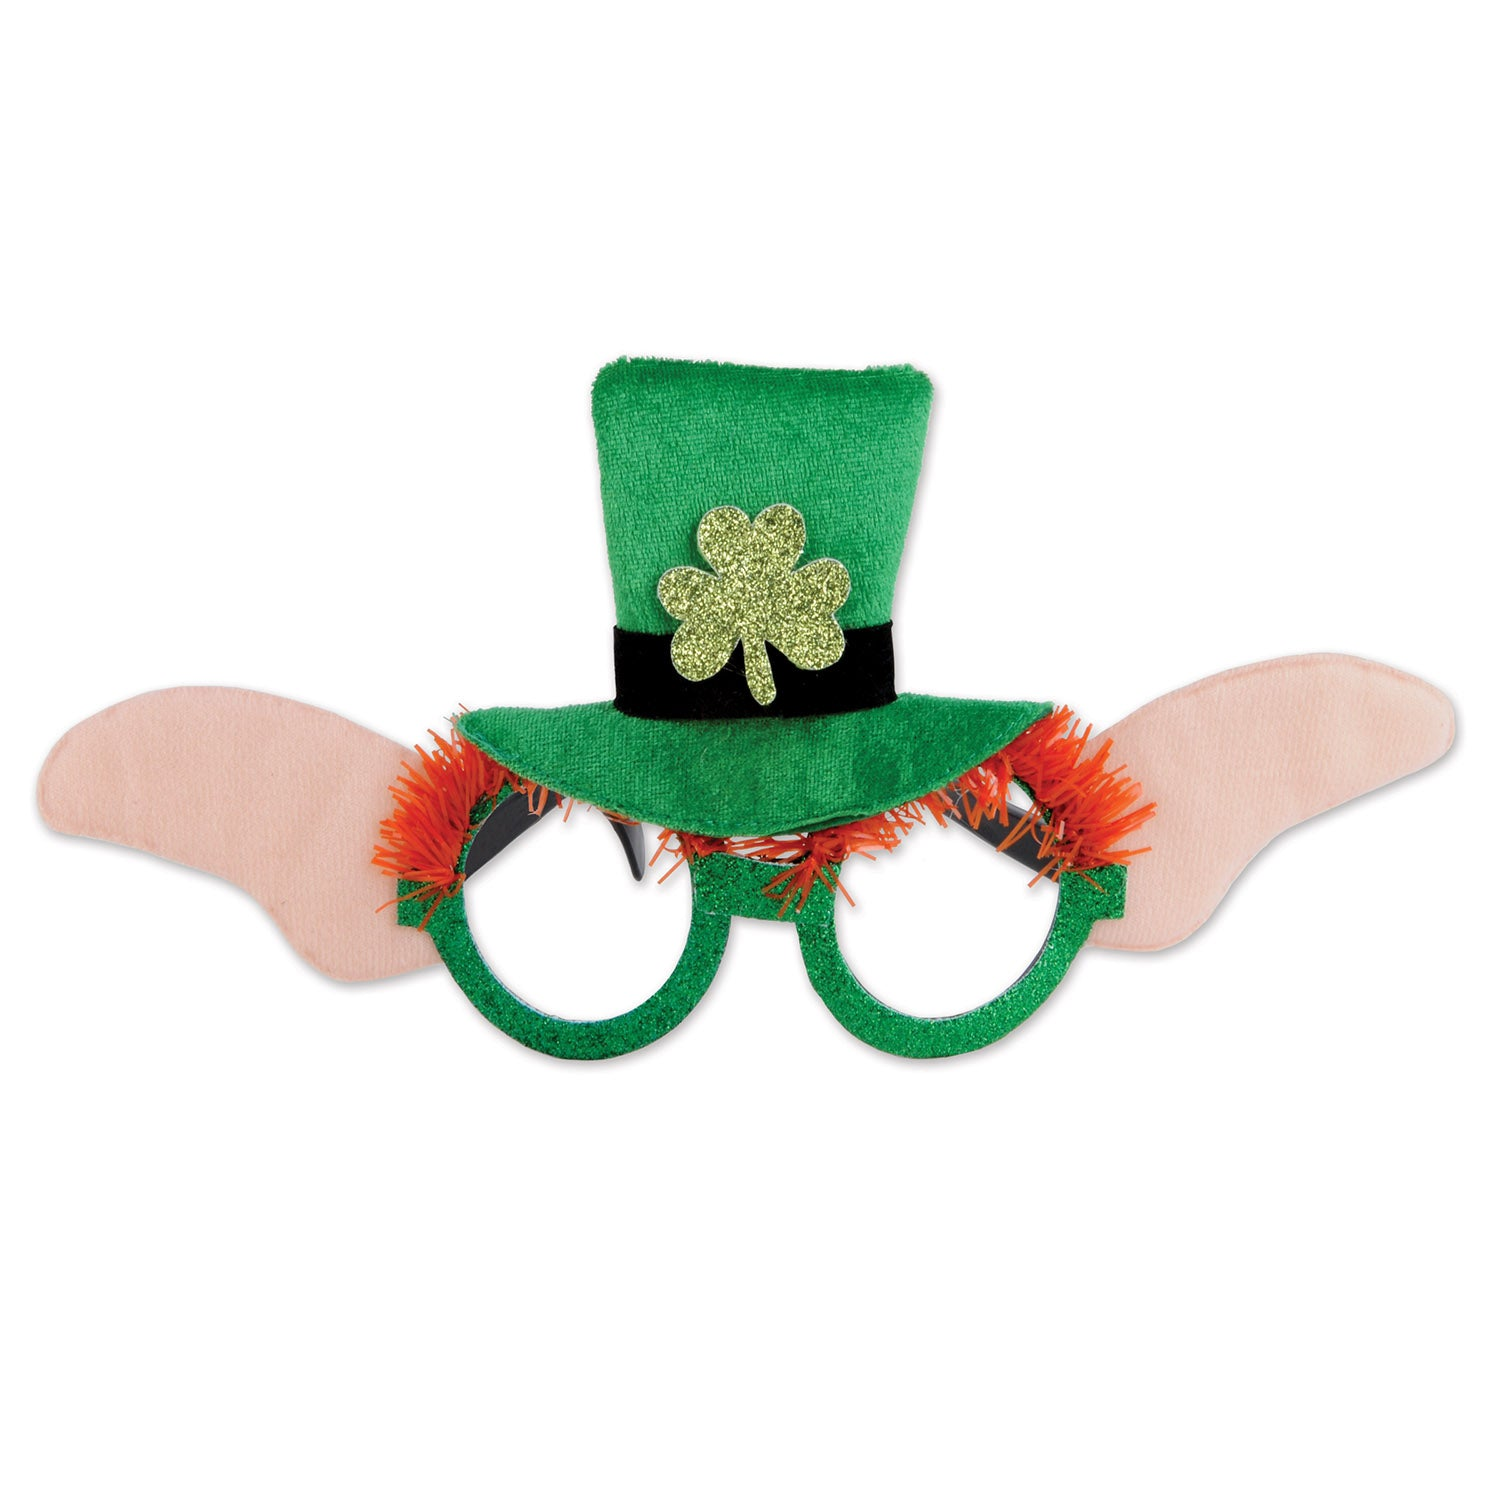 Leprechaun Glasses by Beistle - St. Patricks Day Theme Decorations